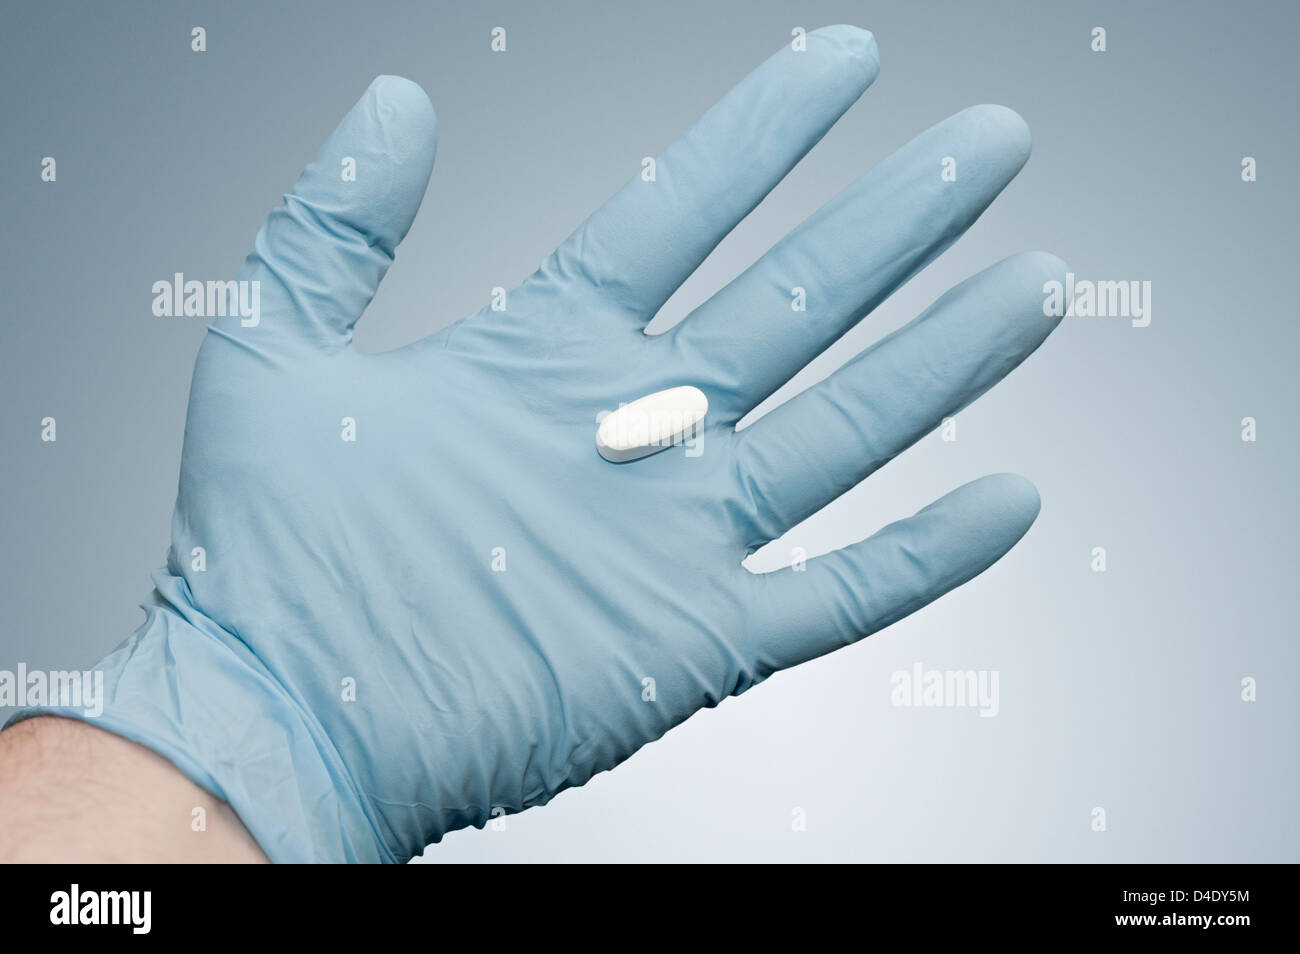 Pill on the hand of a person wearing surgical gloves - Stock Image